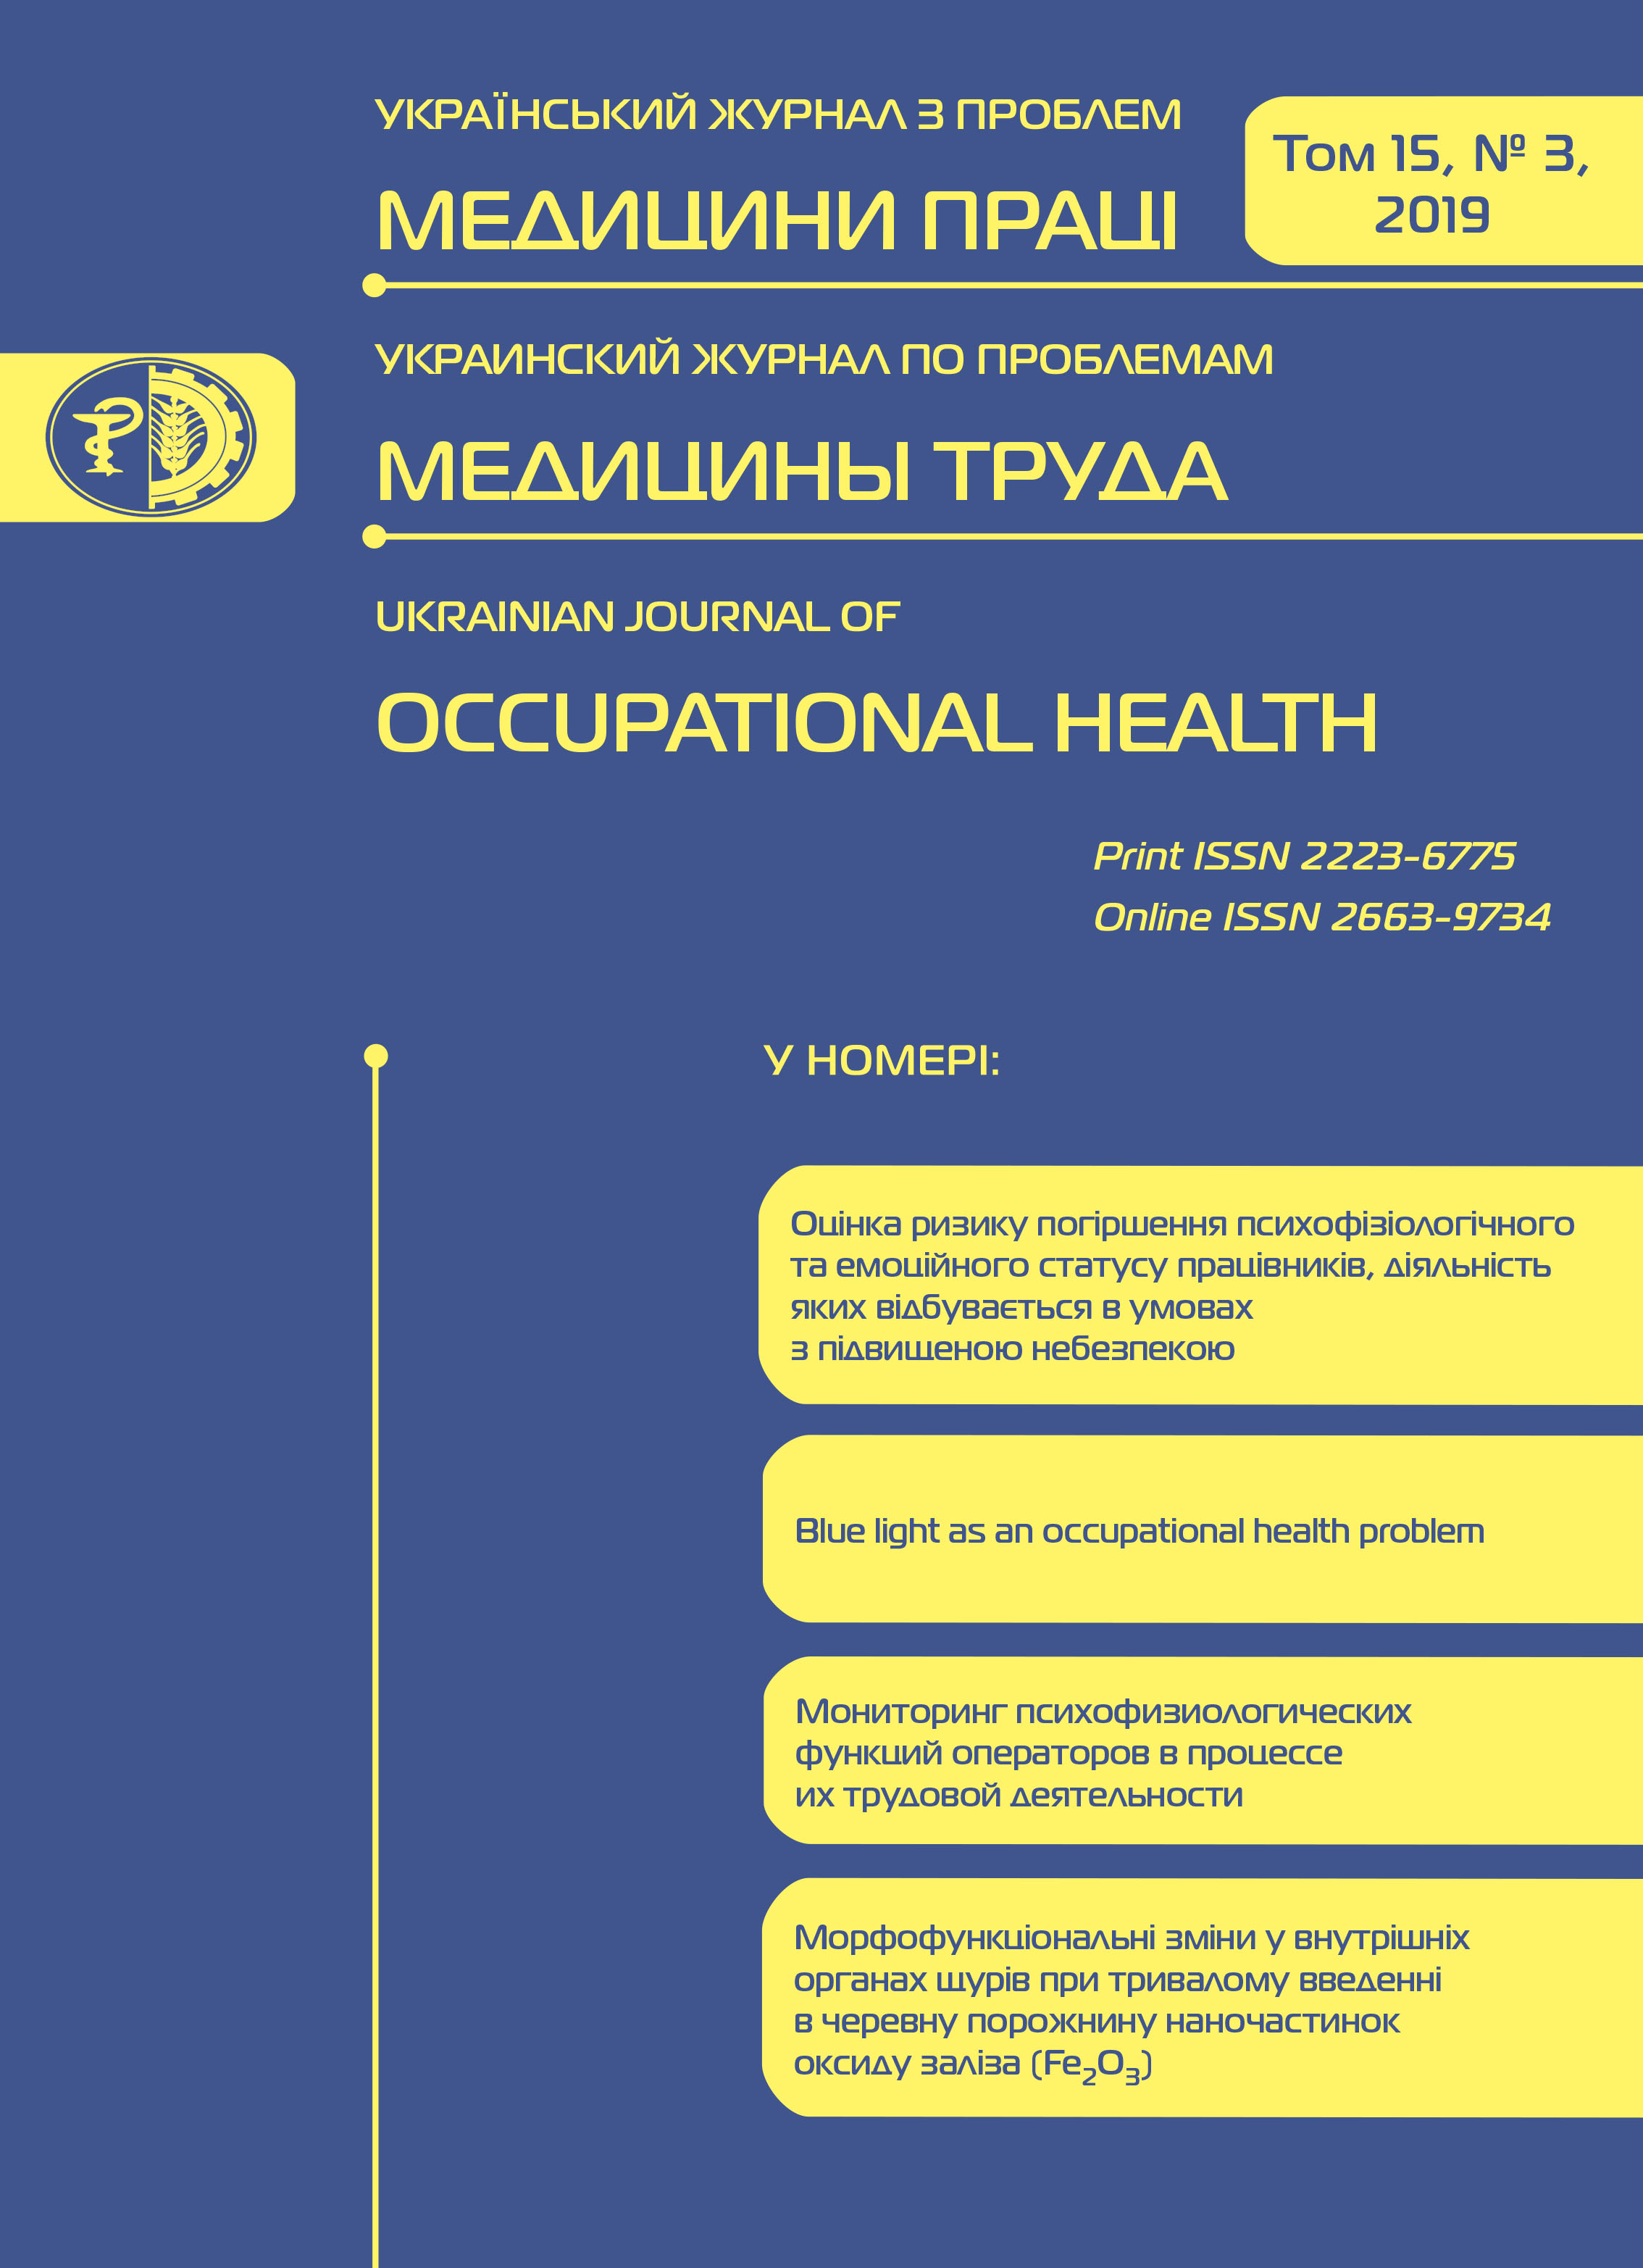 UKRAINIAN JOURNAL OF OCCUPATIONAL HEALTH